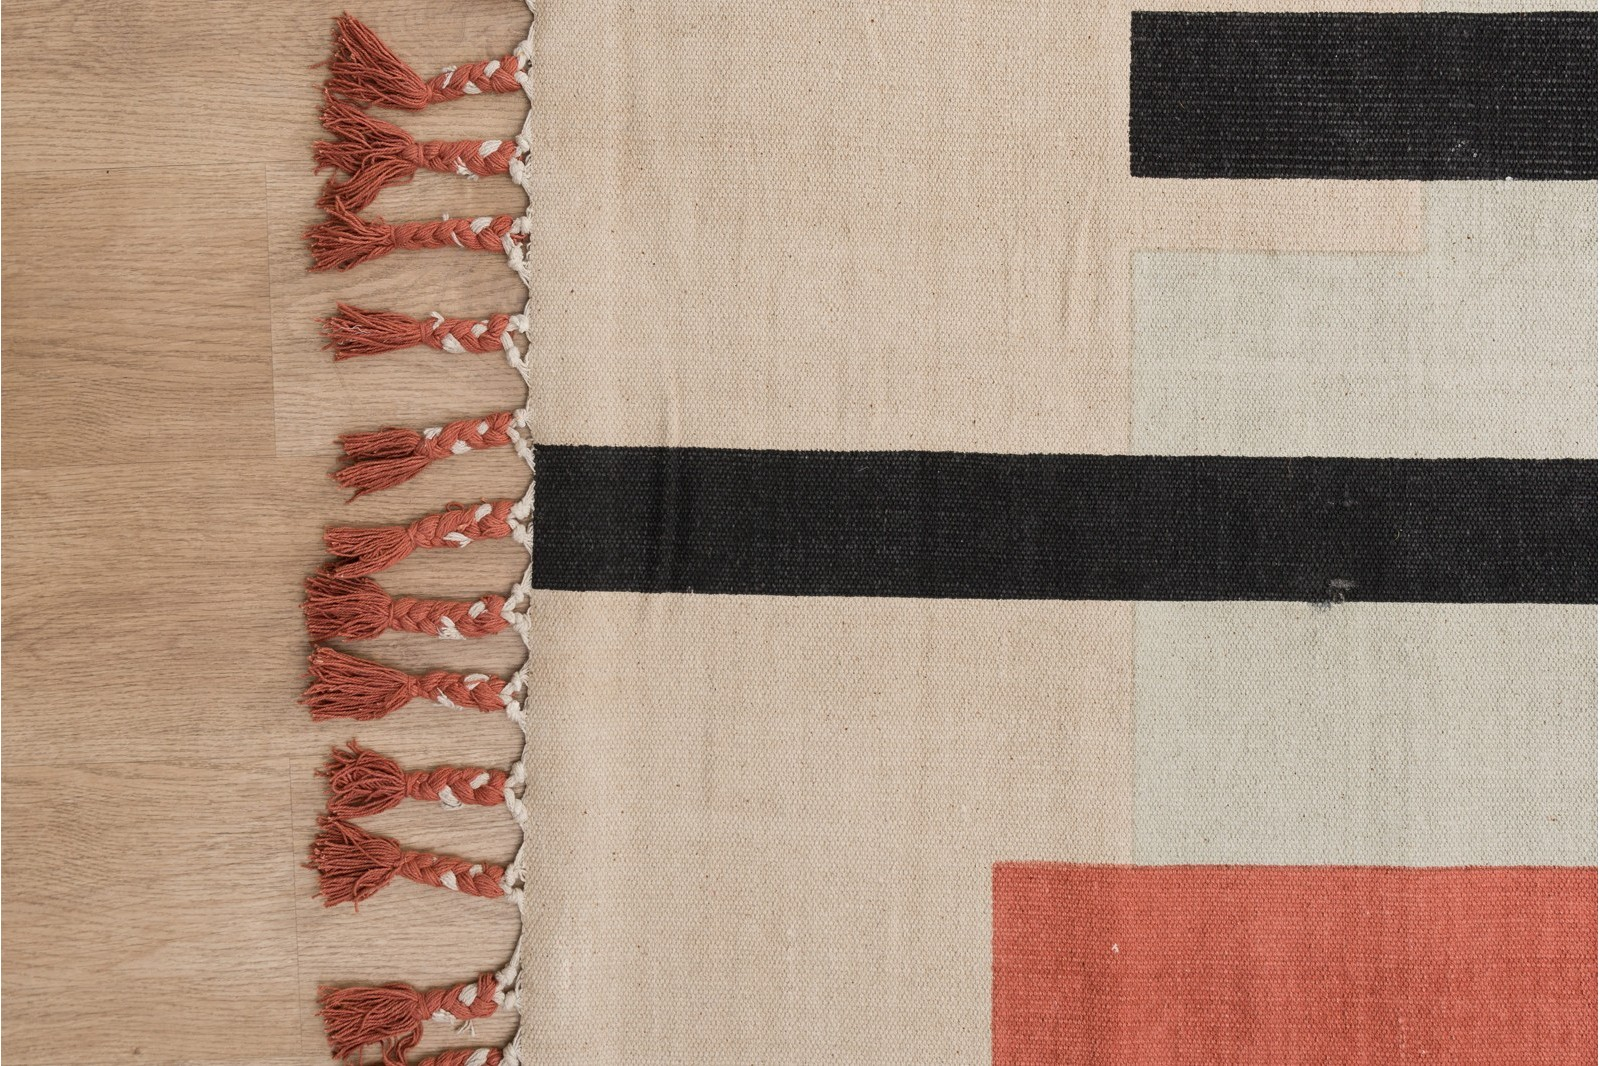 FLORA RUG. ABSTRACT DESIGN AND FRINGES